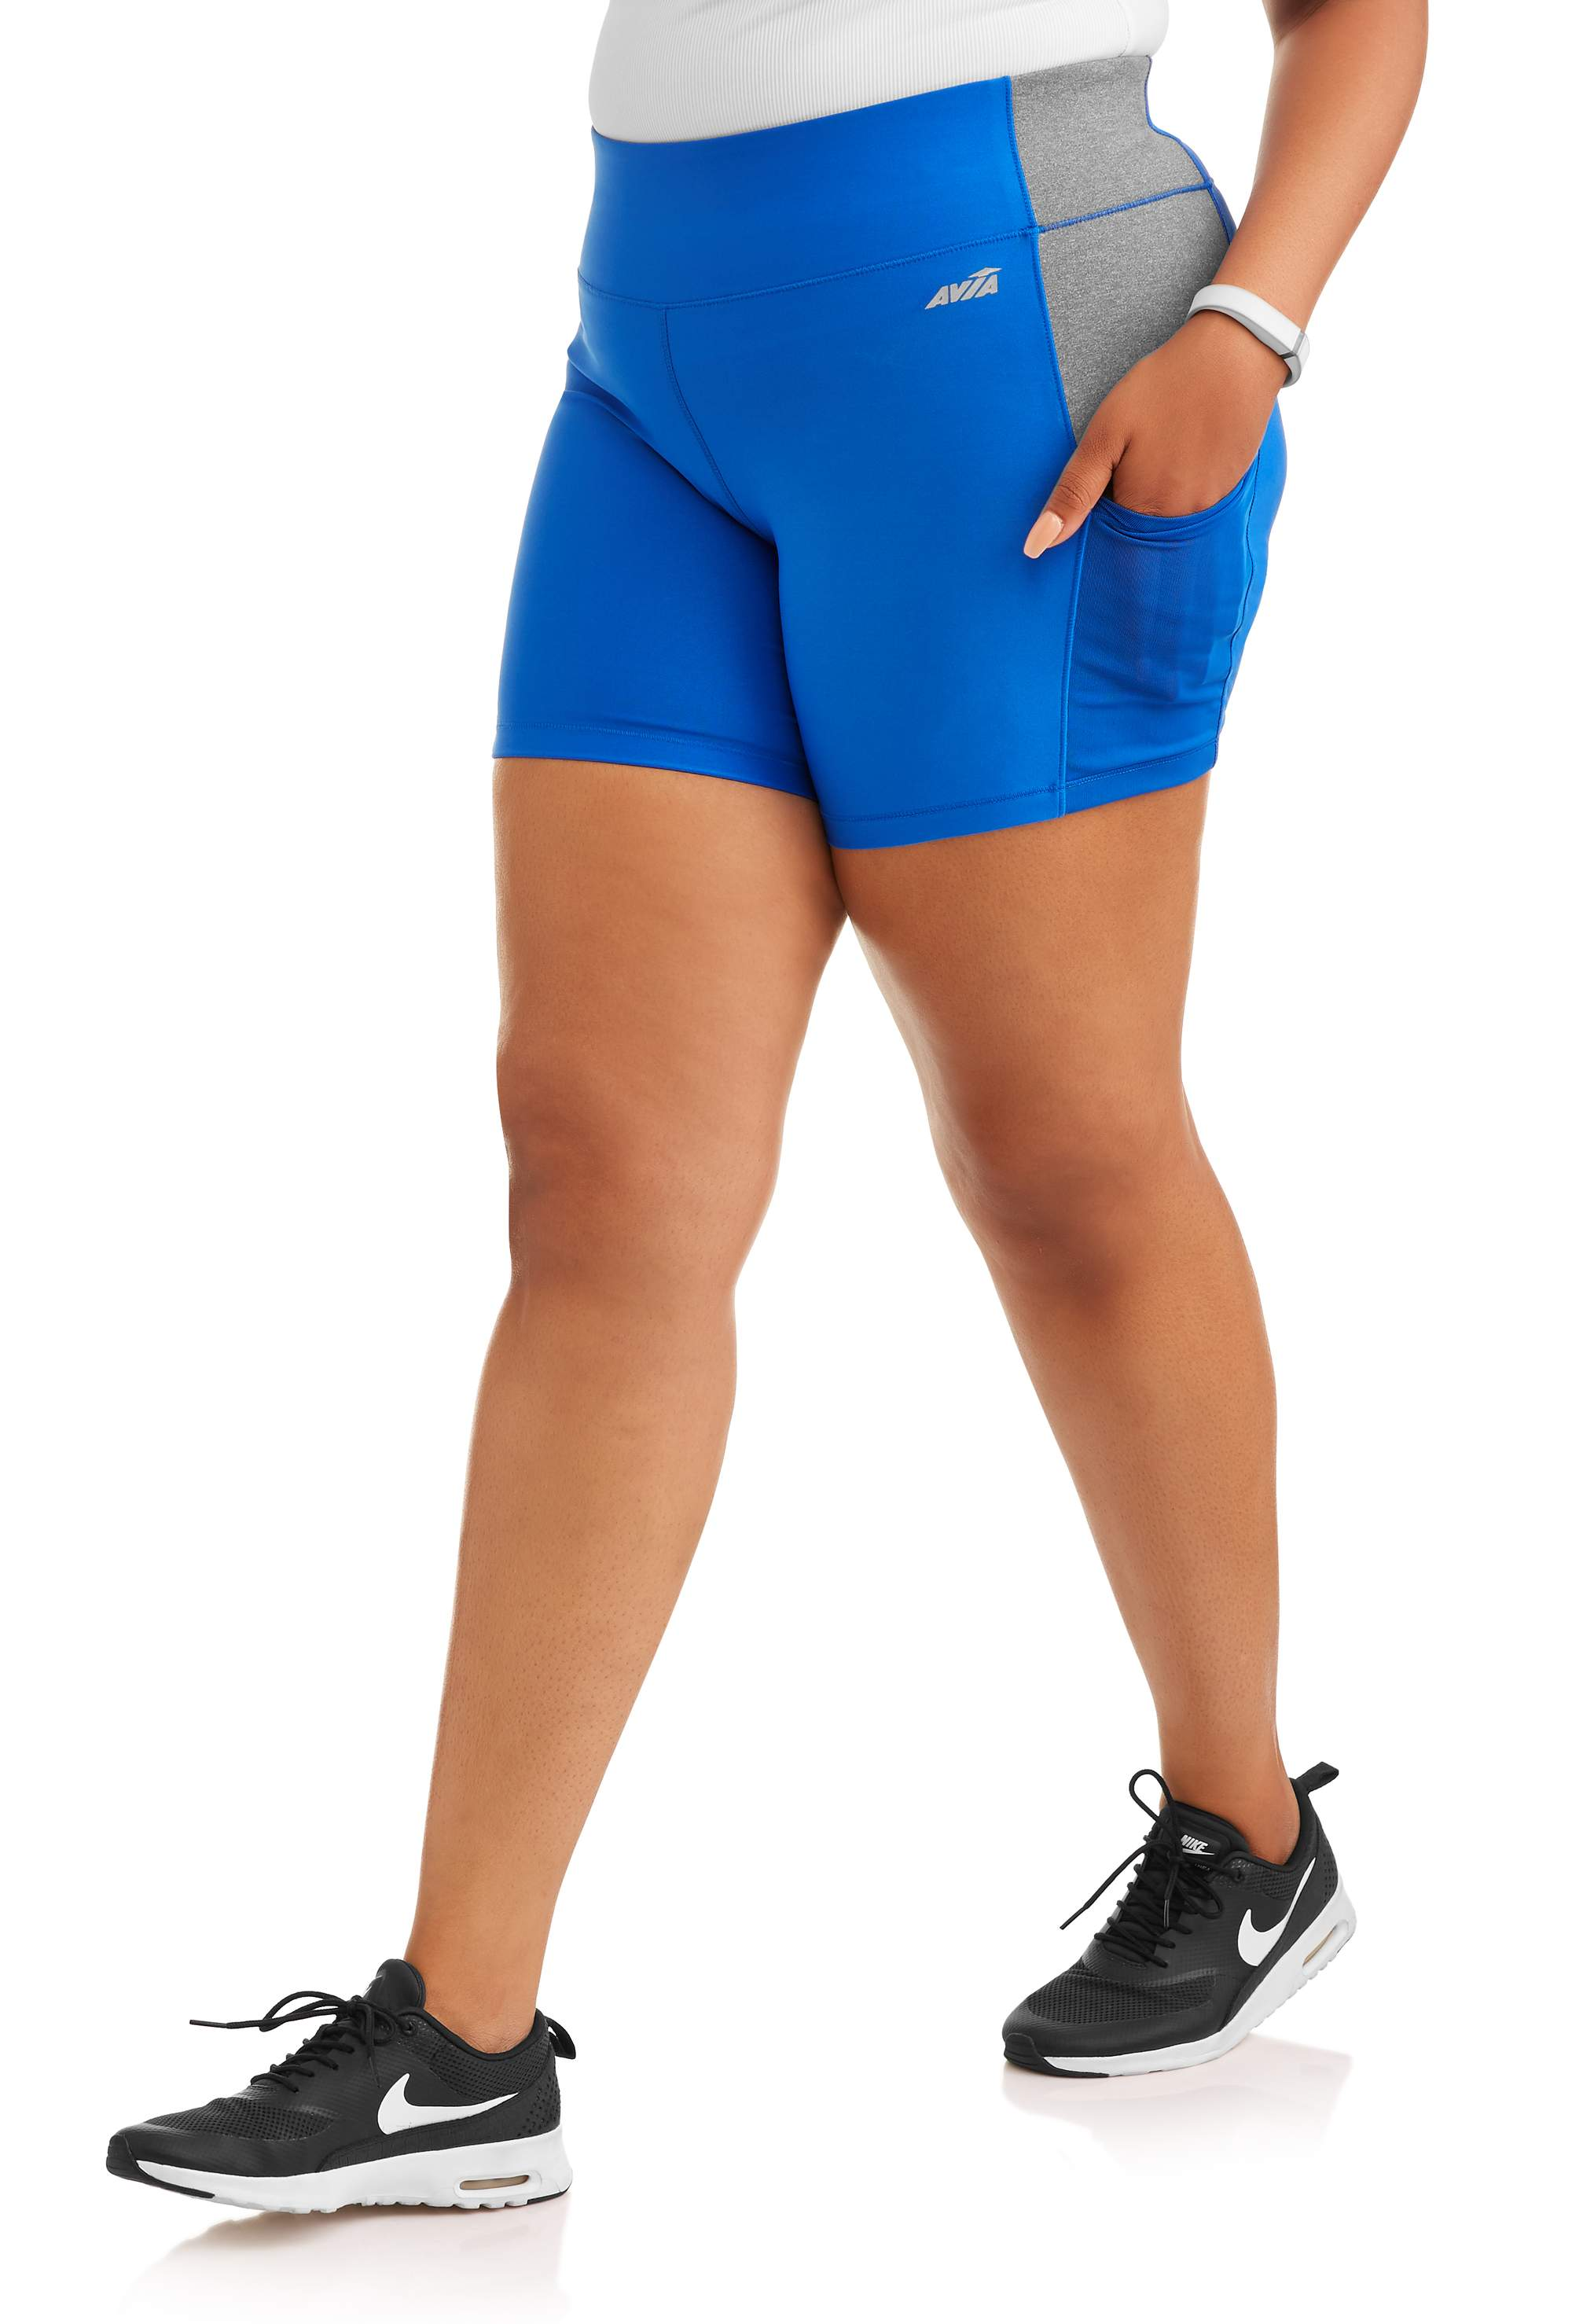 Women's Plus Size Need for Speed Short with Built-In Side Pocket